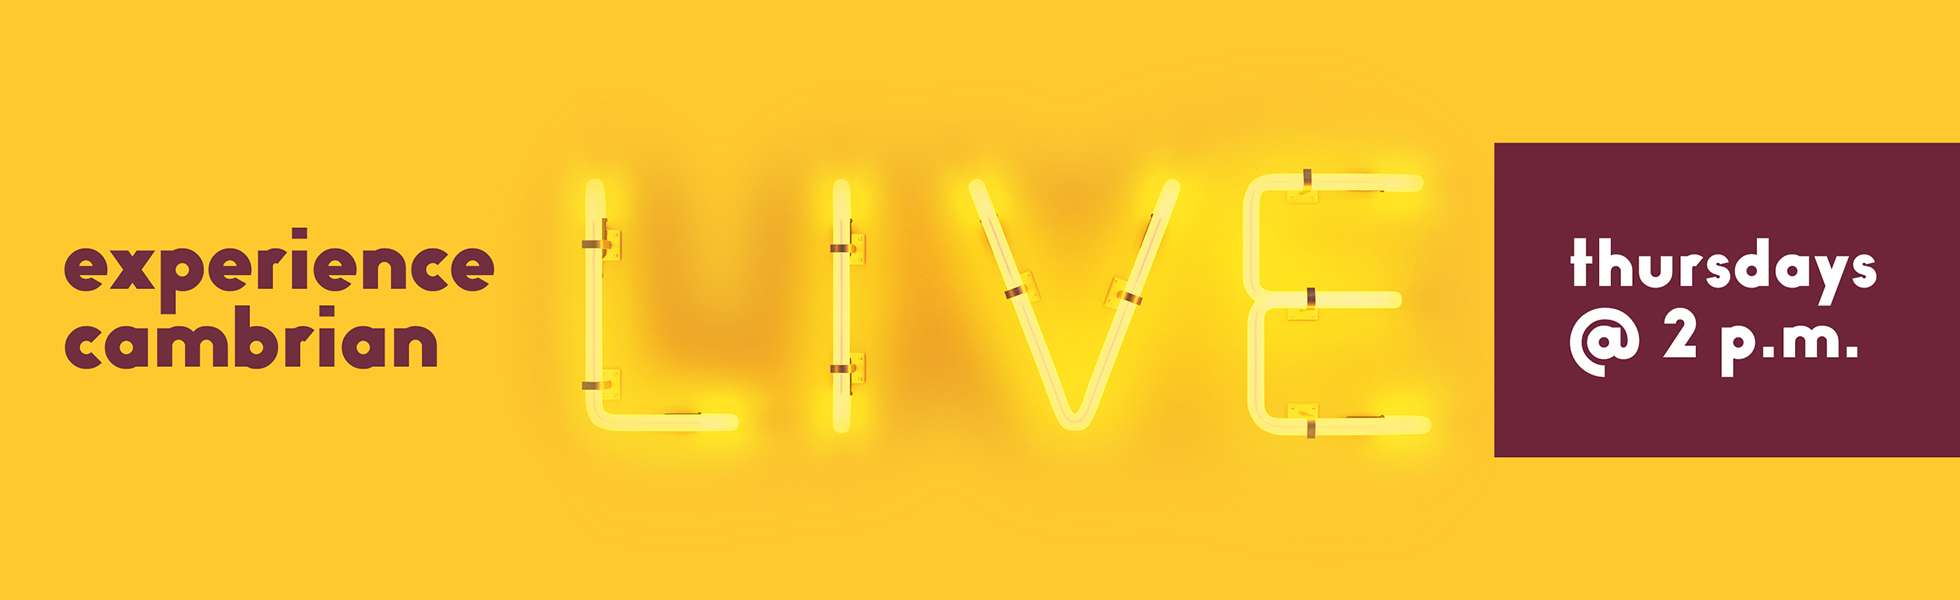 Experience Cambrian Live Thursday's at 2 p.m